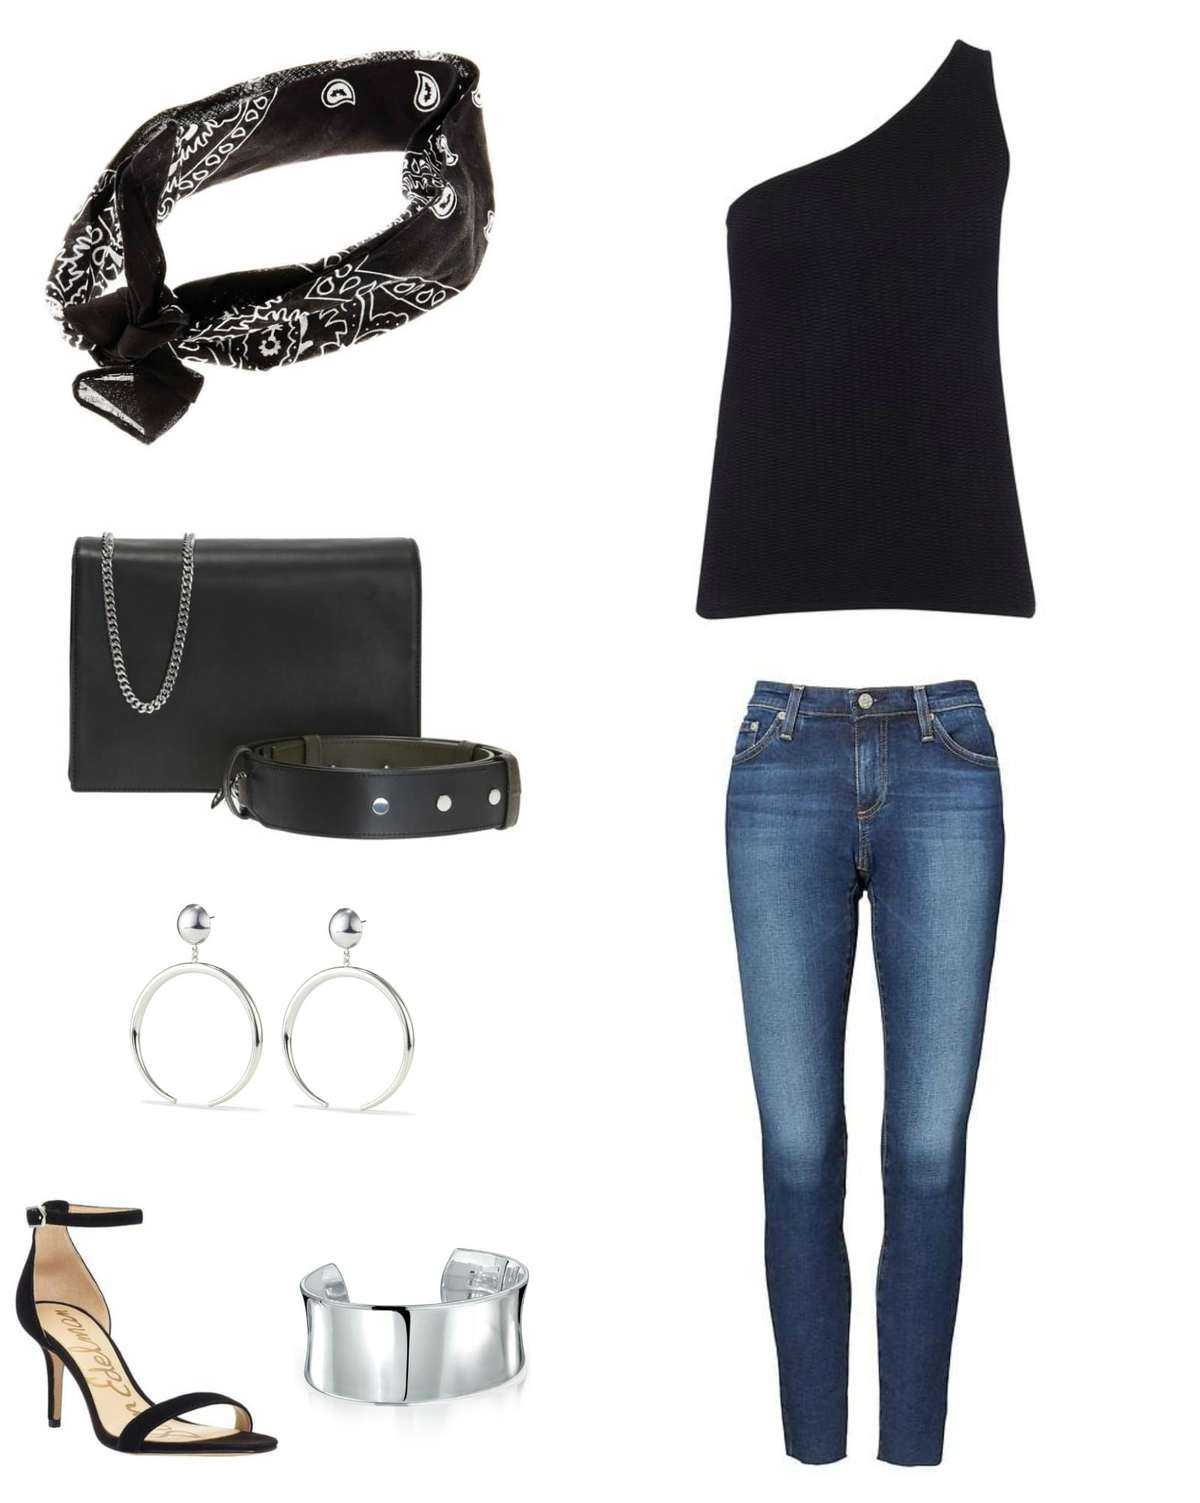 Image is of a black one shouldered cashmere sweater with skinny jeans, a black bandana, black handbag, silver Jenny Bird Factory hoops, a silver cuff bracelet, and Sam Edelman black ankle strap heeled sandals.